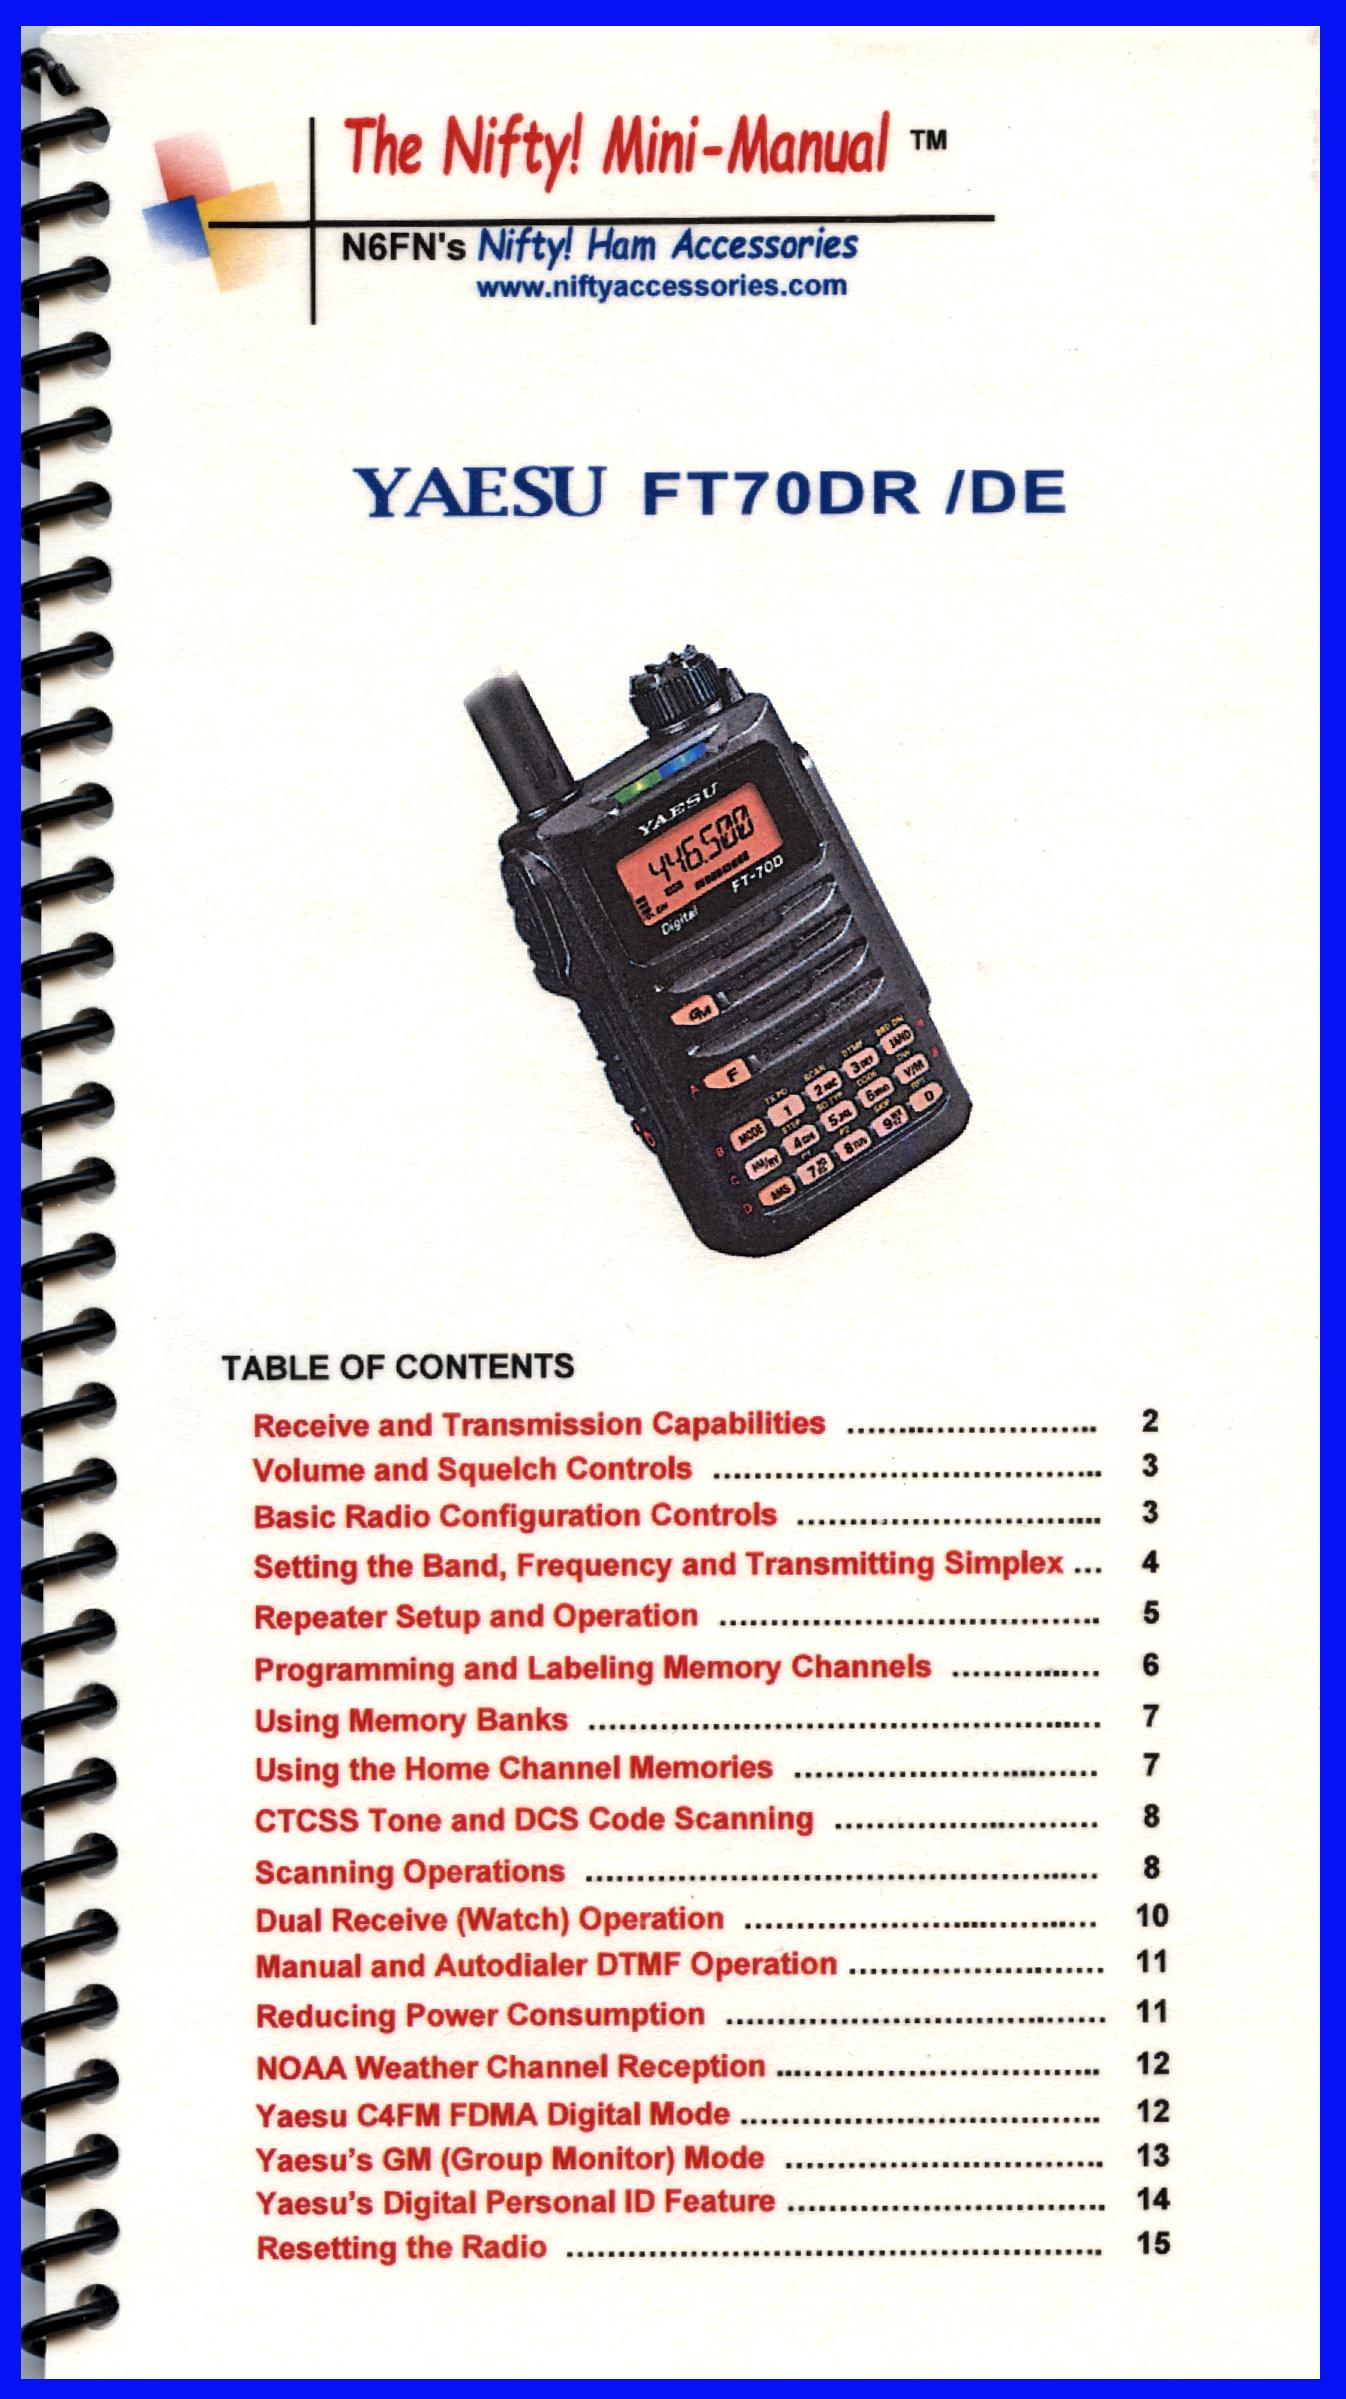 Yaesu FT-70DR Mini-Manual